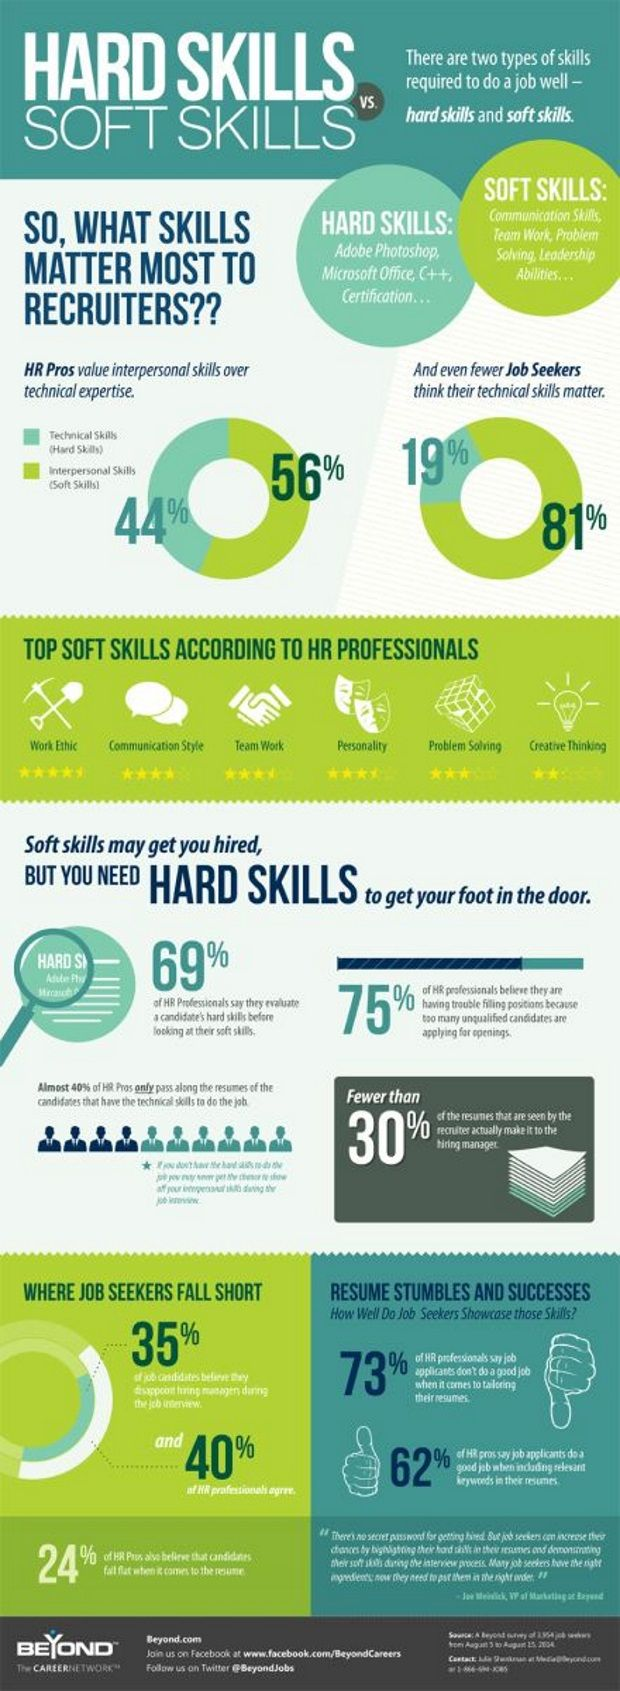 a comprehensive checklist of the 21st century learning and work hard versus soft skills soft skills are as important as any other skills to develop